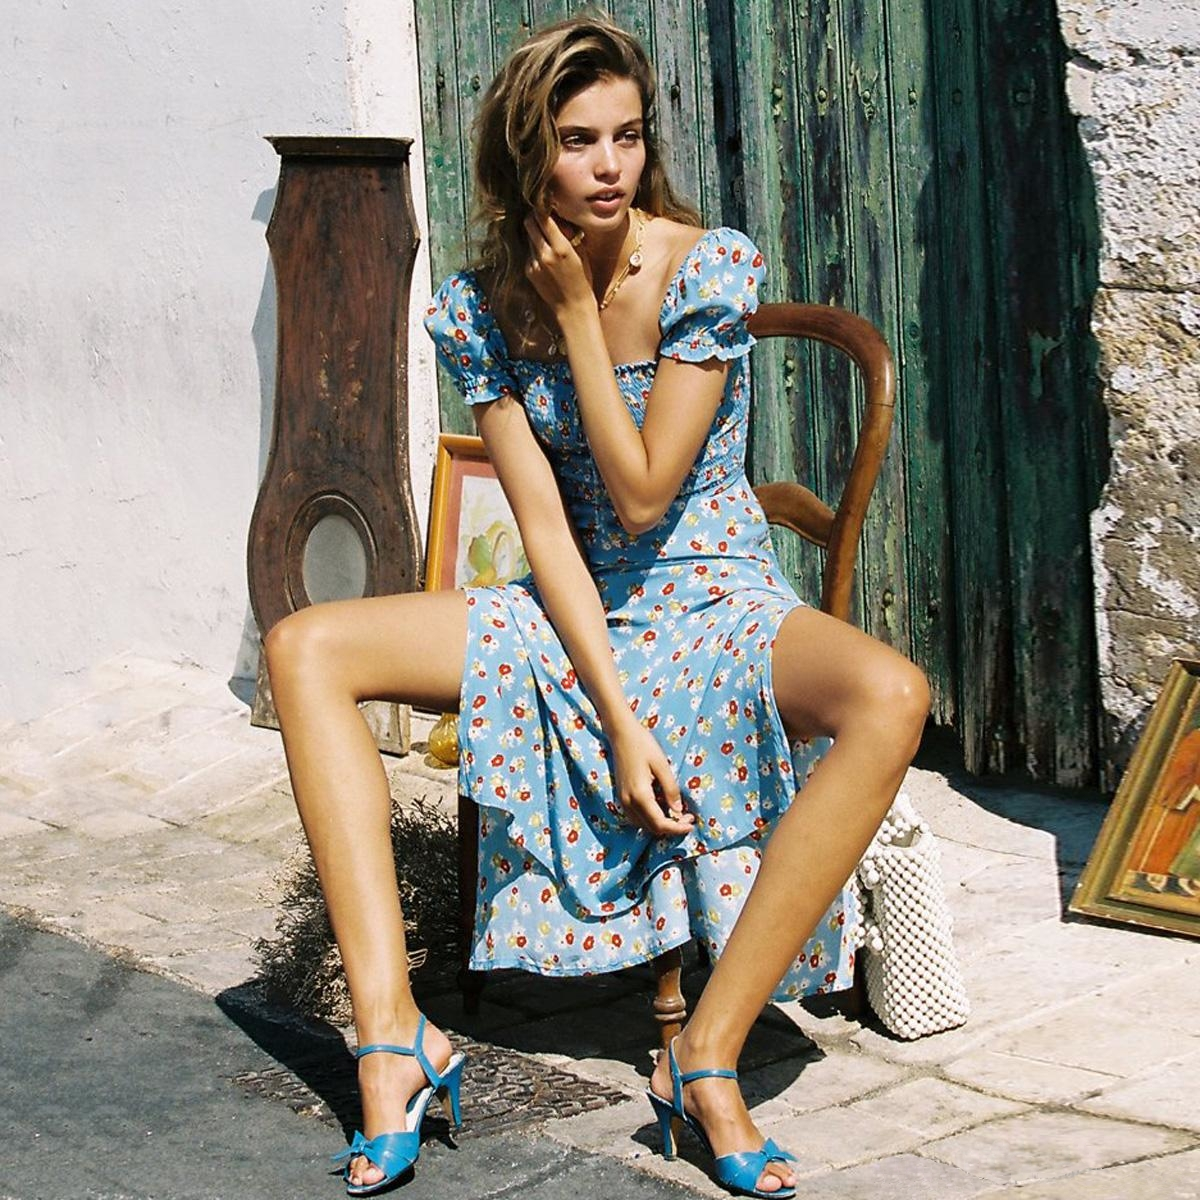 beautiful model is posing on a chair in a blue floral dress